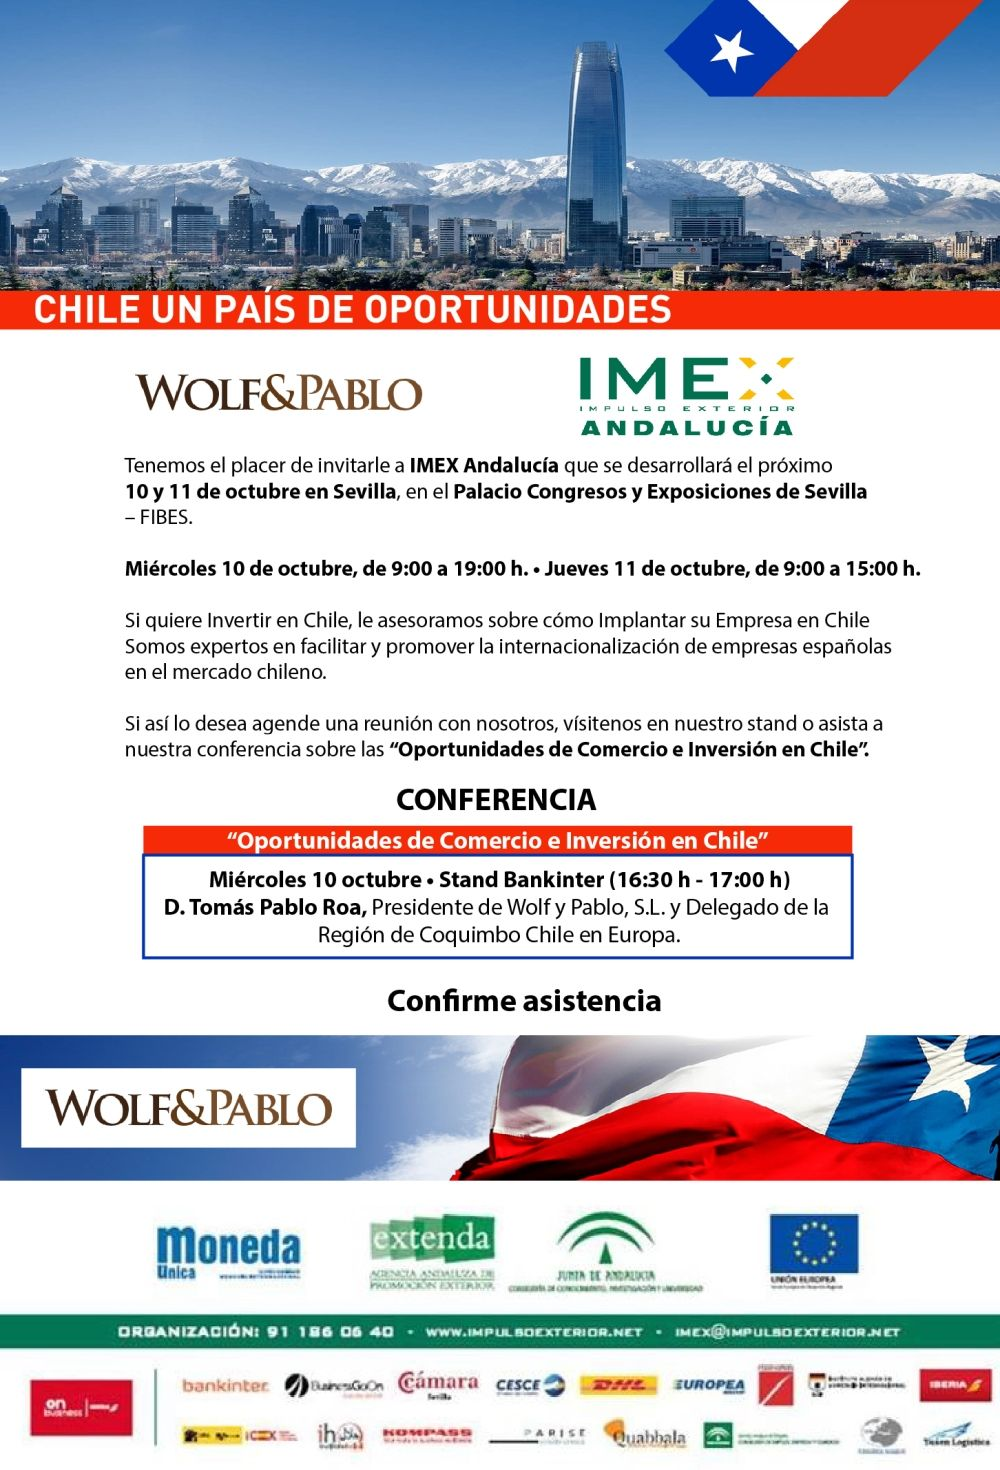 IMEX 2018 Andalucía Wolf y Pablo